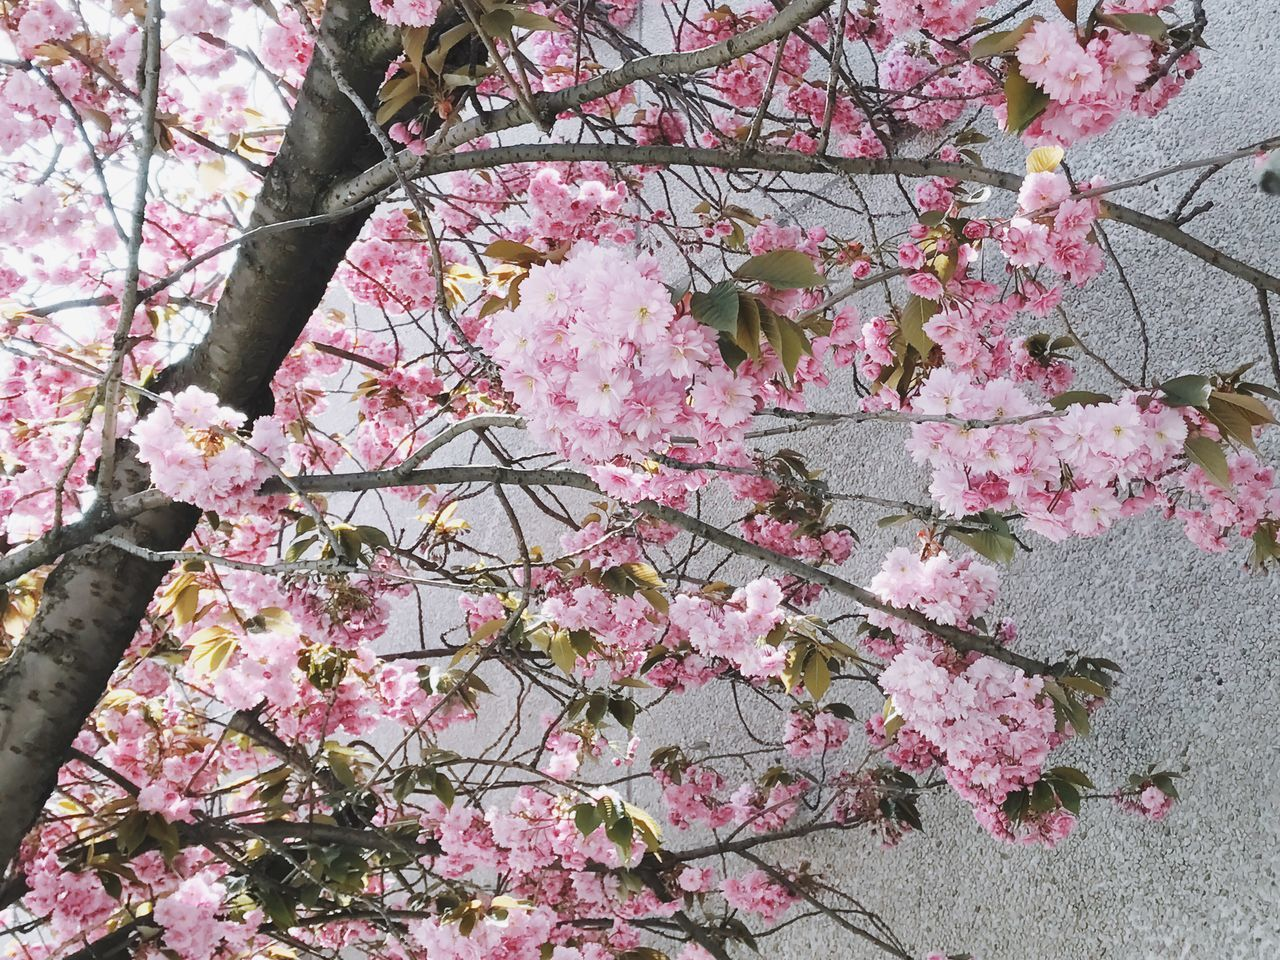 flower, pink color, growth, blossom, fragility, beauty in nature, springtime, cherry blossom, tree, freshness, branch, cherry tree, nature, botany, no people, apple blossom, petal, low angle view, rhododendron, outdoors, day, blooming, close-up, flower head, sky